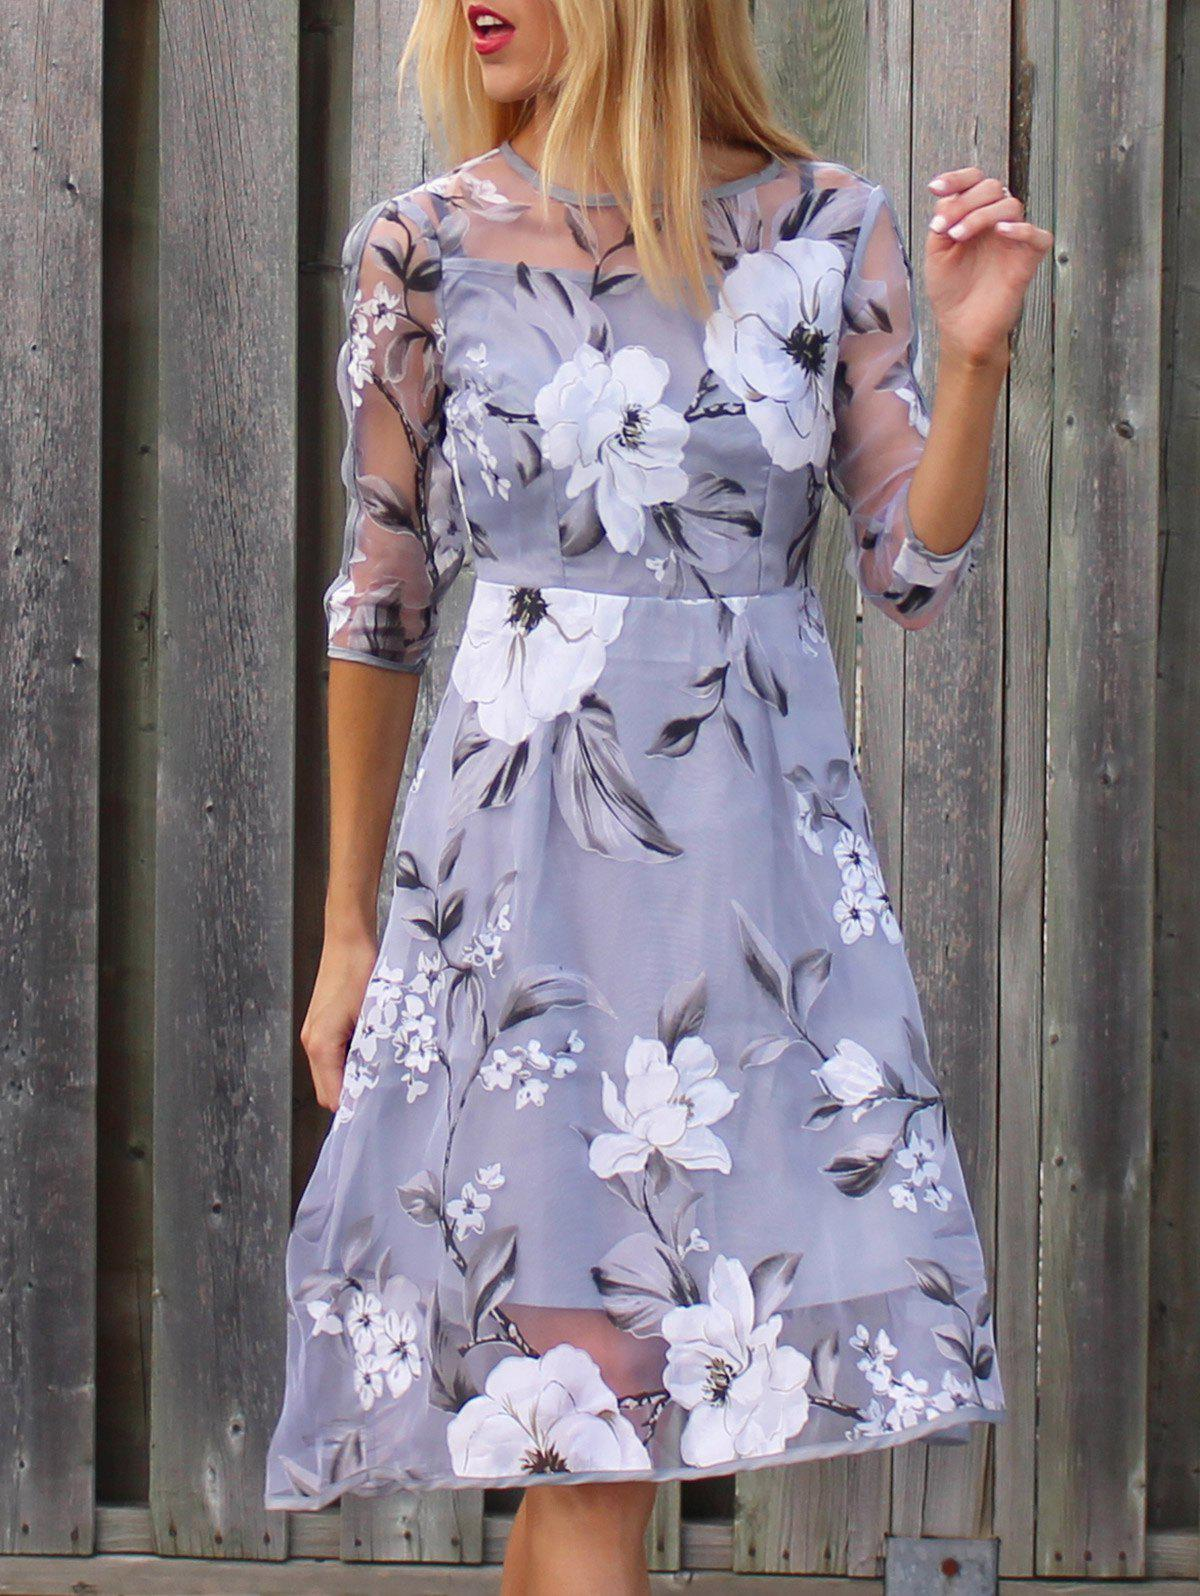 Stylish 3/4 Sleeve Round Neck Floral Print See-Through Women's Dress - LIGHT GRAY 2XL